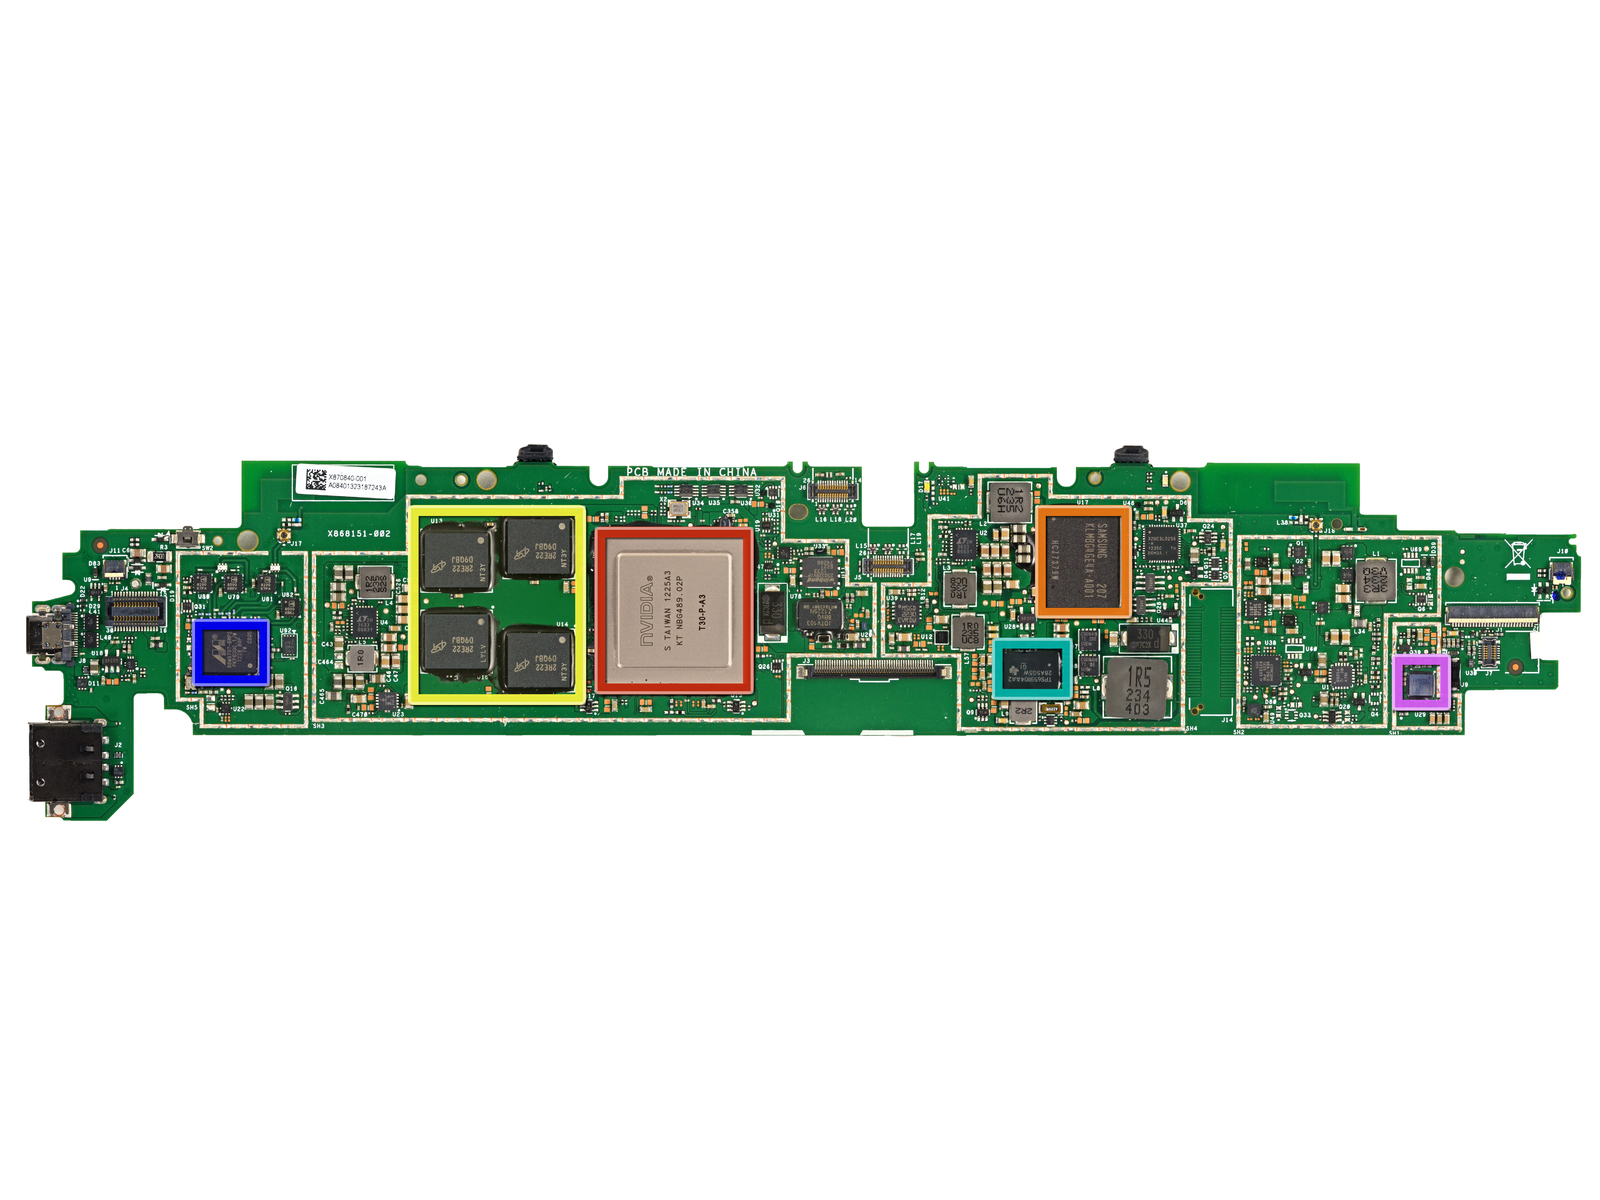 The Surface RT's motherboard. Tegra 3 SOC in red, Samsung RAM in yellow, Marvell MIMO SOC in blue at left.